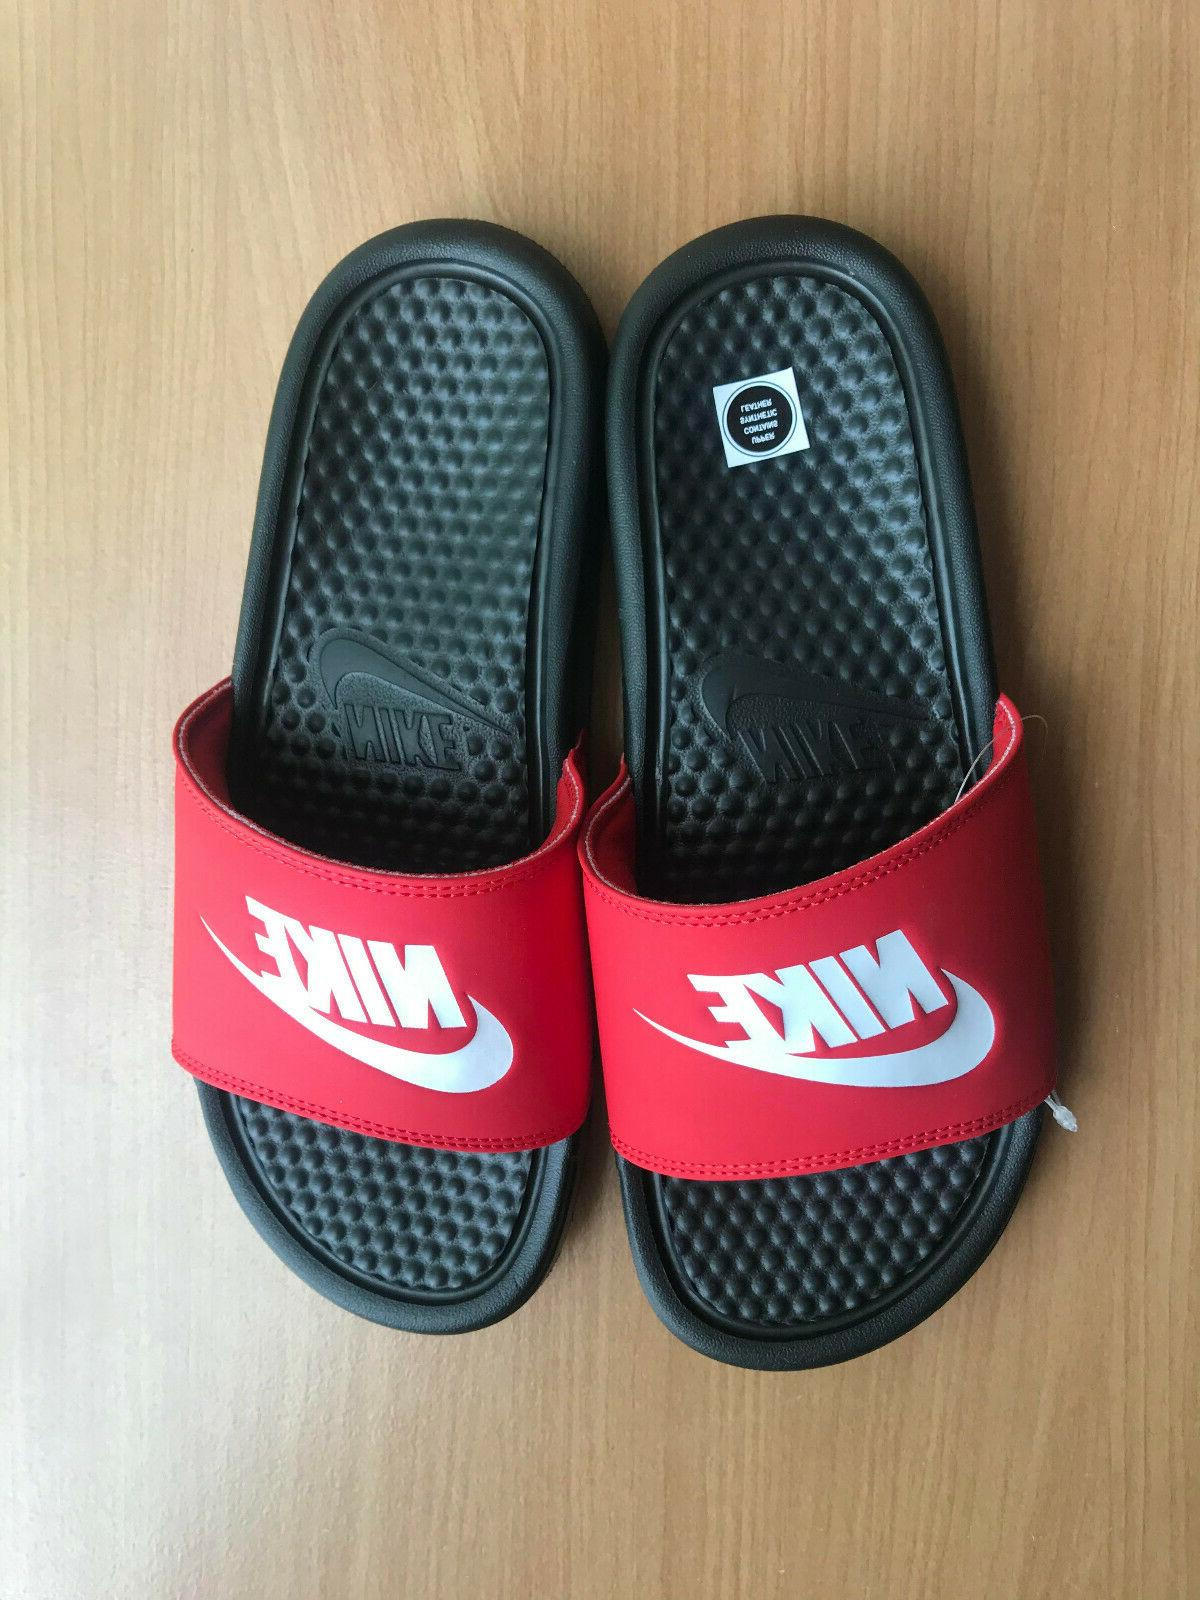 NWT Mens Slide Sandals Slippers Fast Shipping